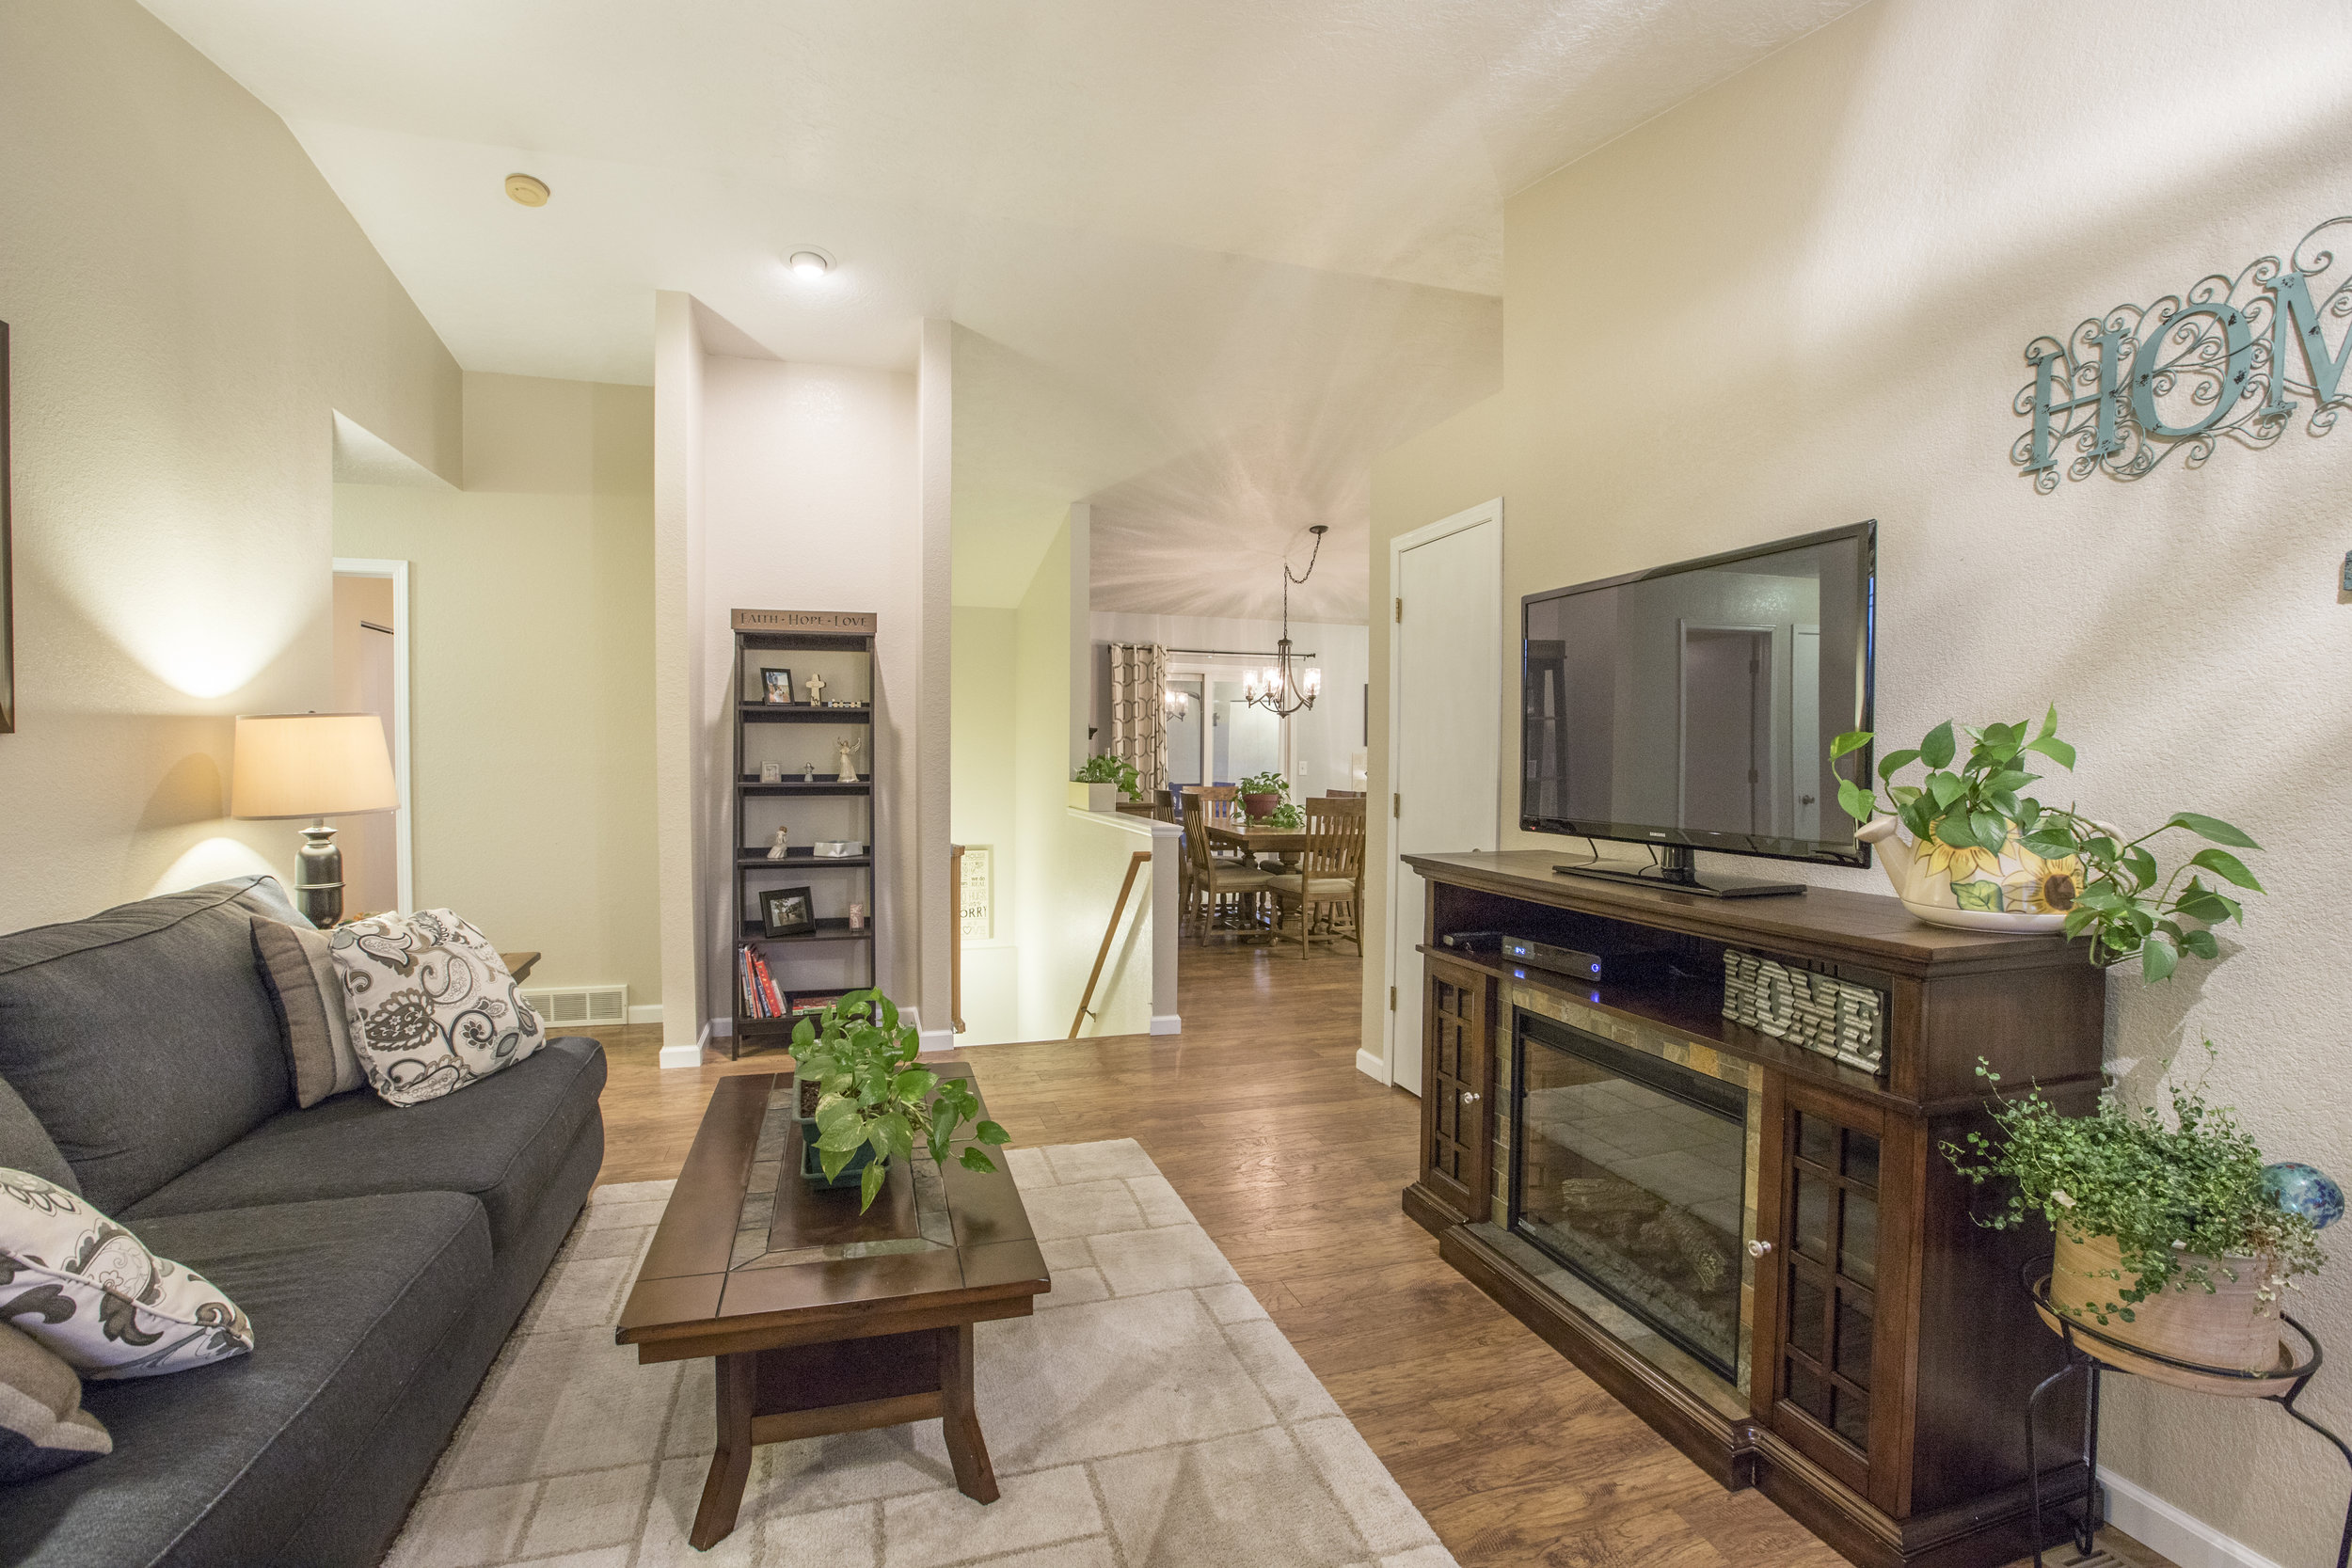 4946W2ndSt-LARGE-33.jpg